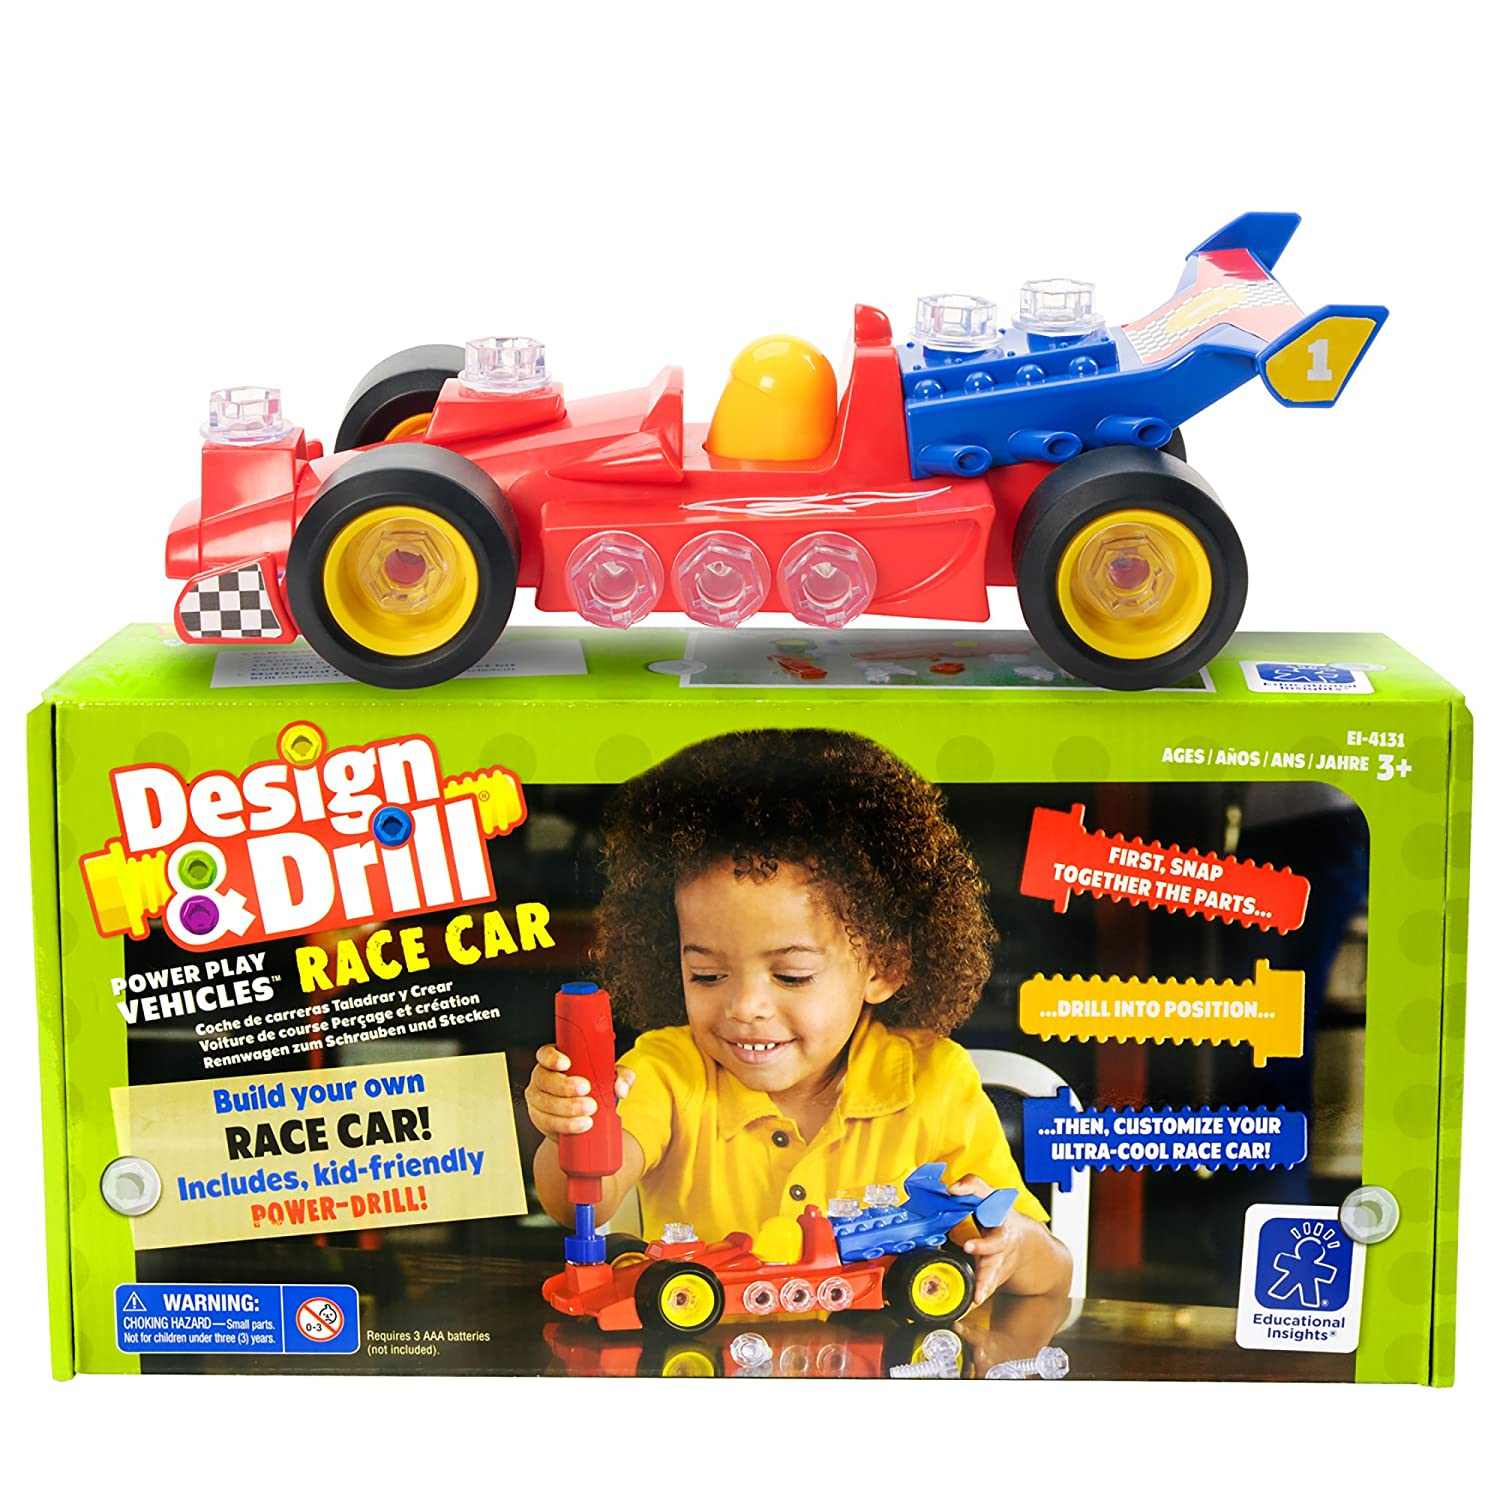 Educational Insights Design and Drill Power Play Vehicles Race Car EI-4131